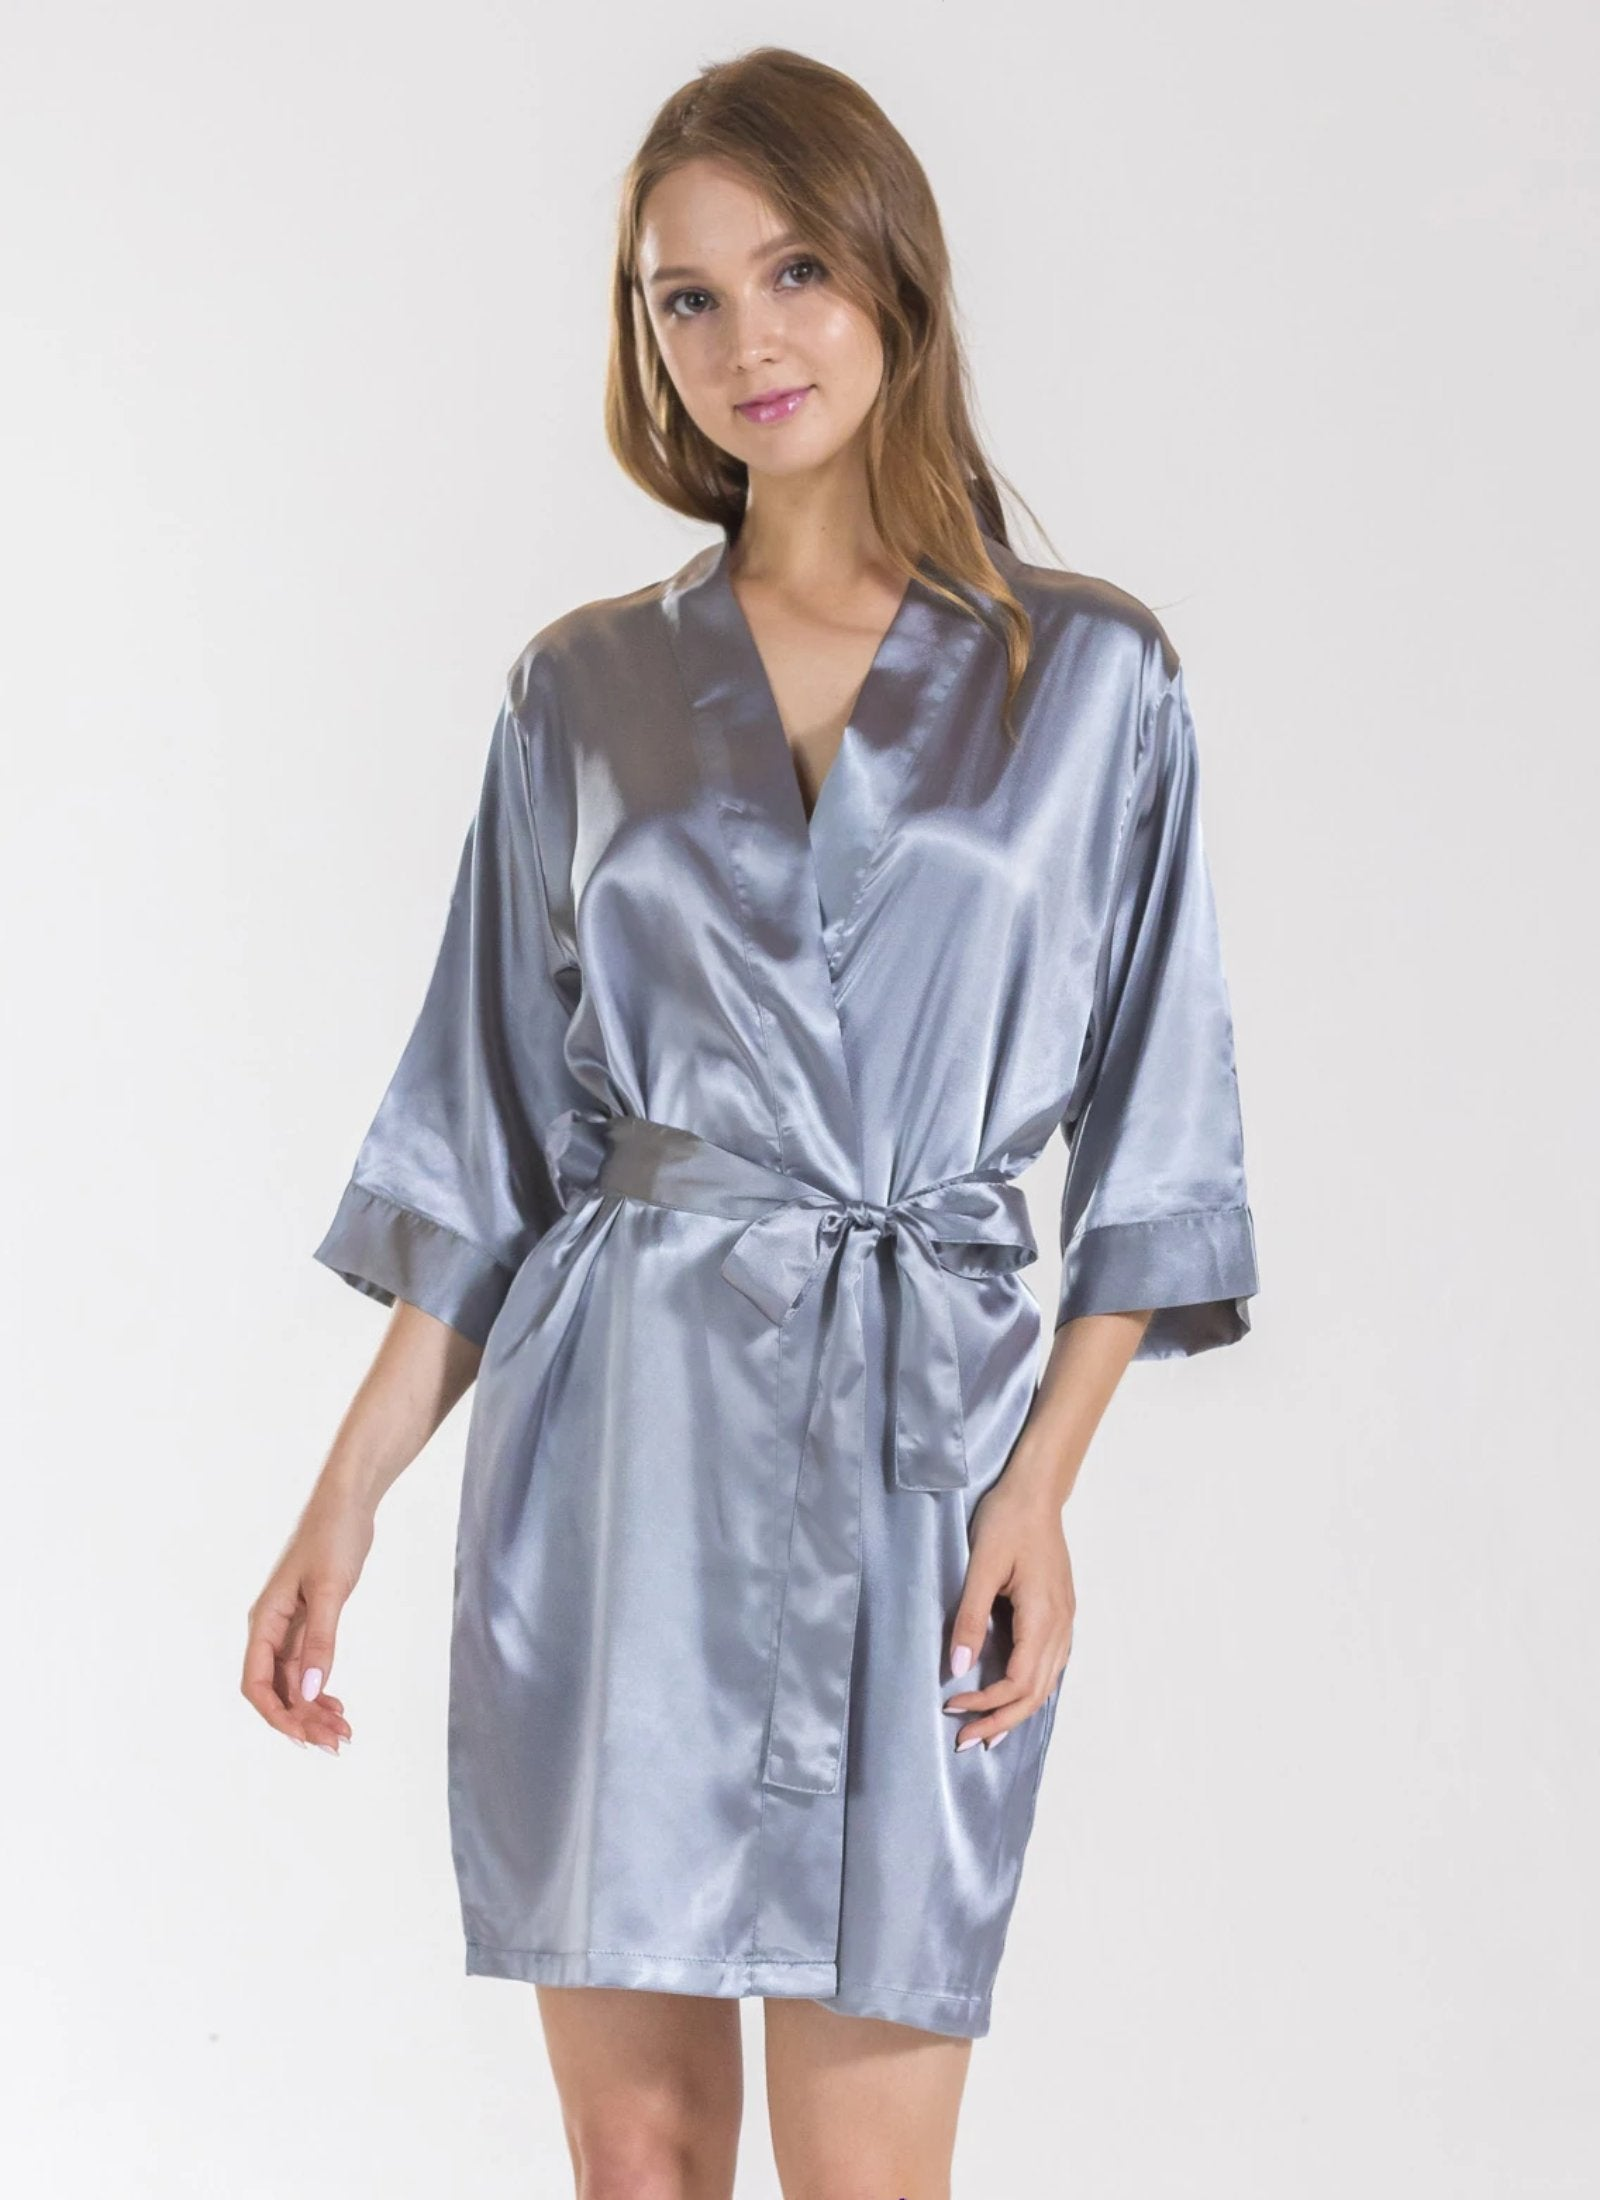 Grey Bridesmaid Satin Robe Sale Bella Bride Bridal